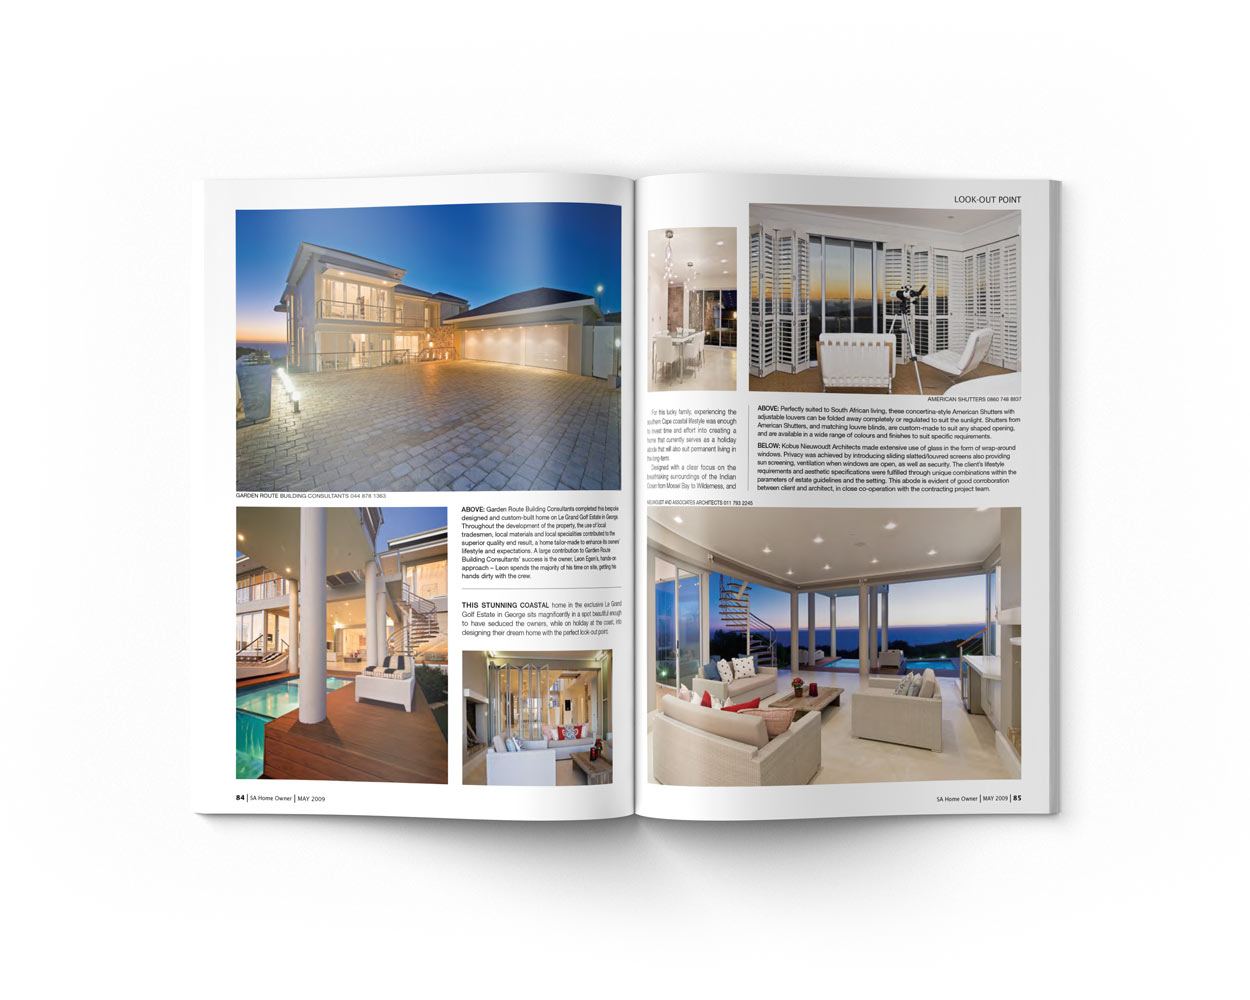 nieuwoudt-architects-home-owner-may-2009-page-3